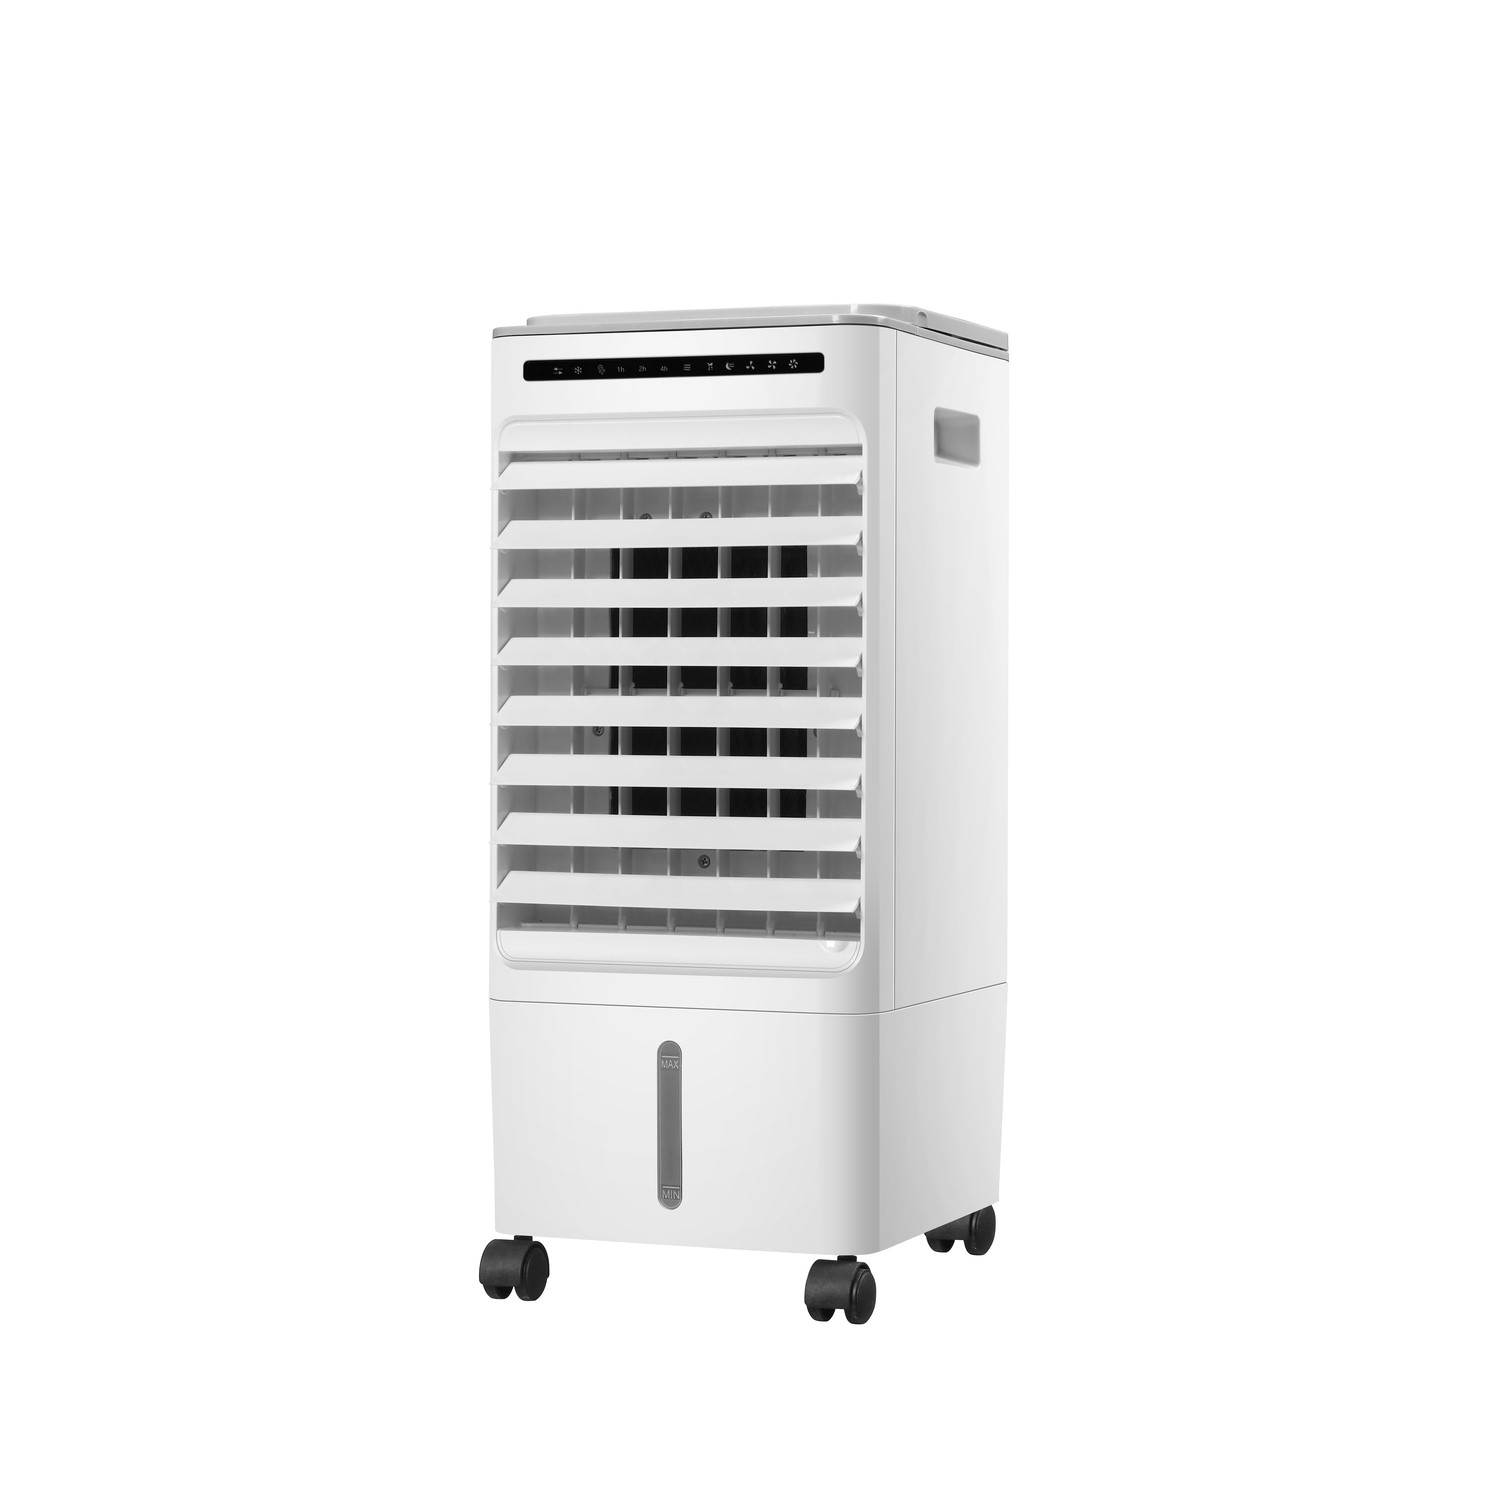 GRADE A1 electriQ Slimline ECO 6L Air Cooler with built in Air Purifier and Humidifier